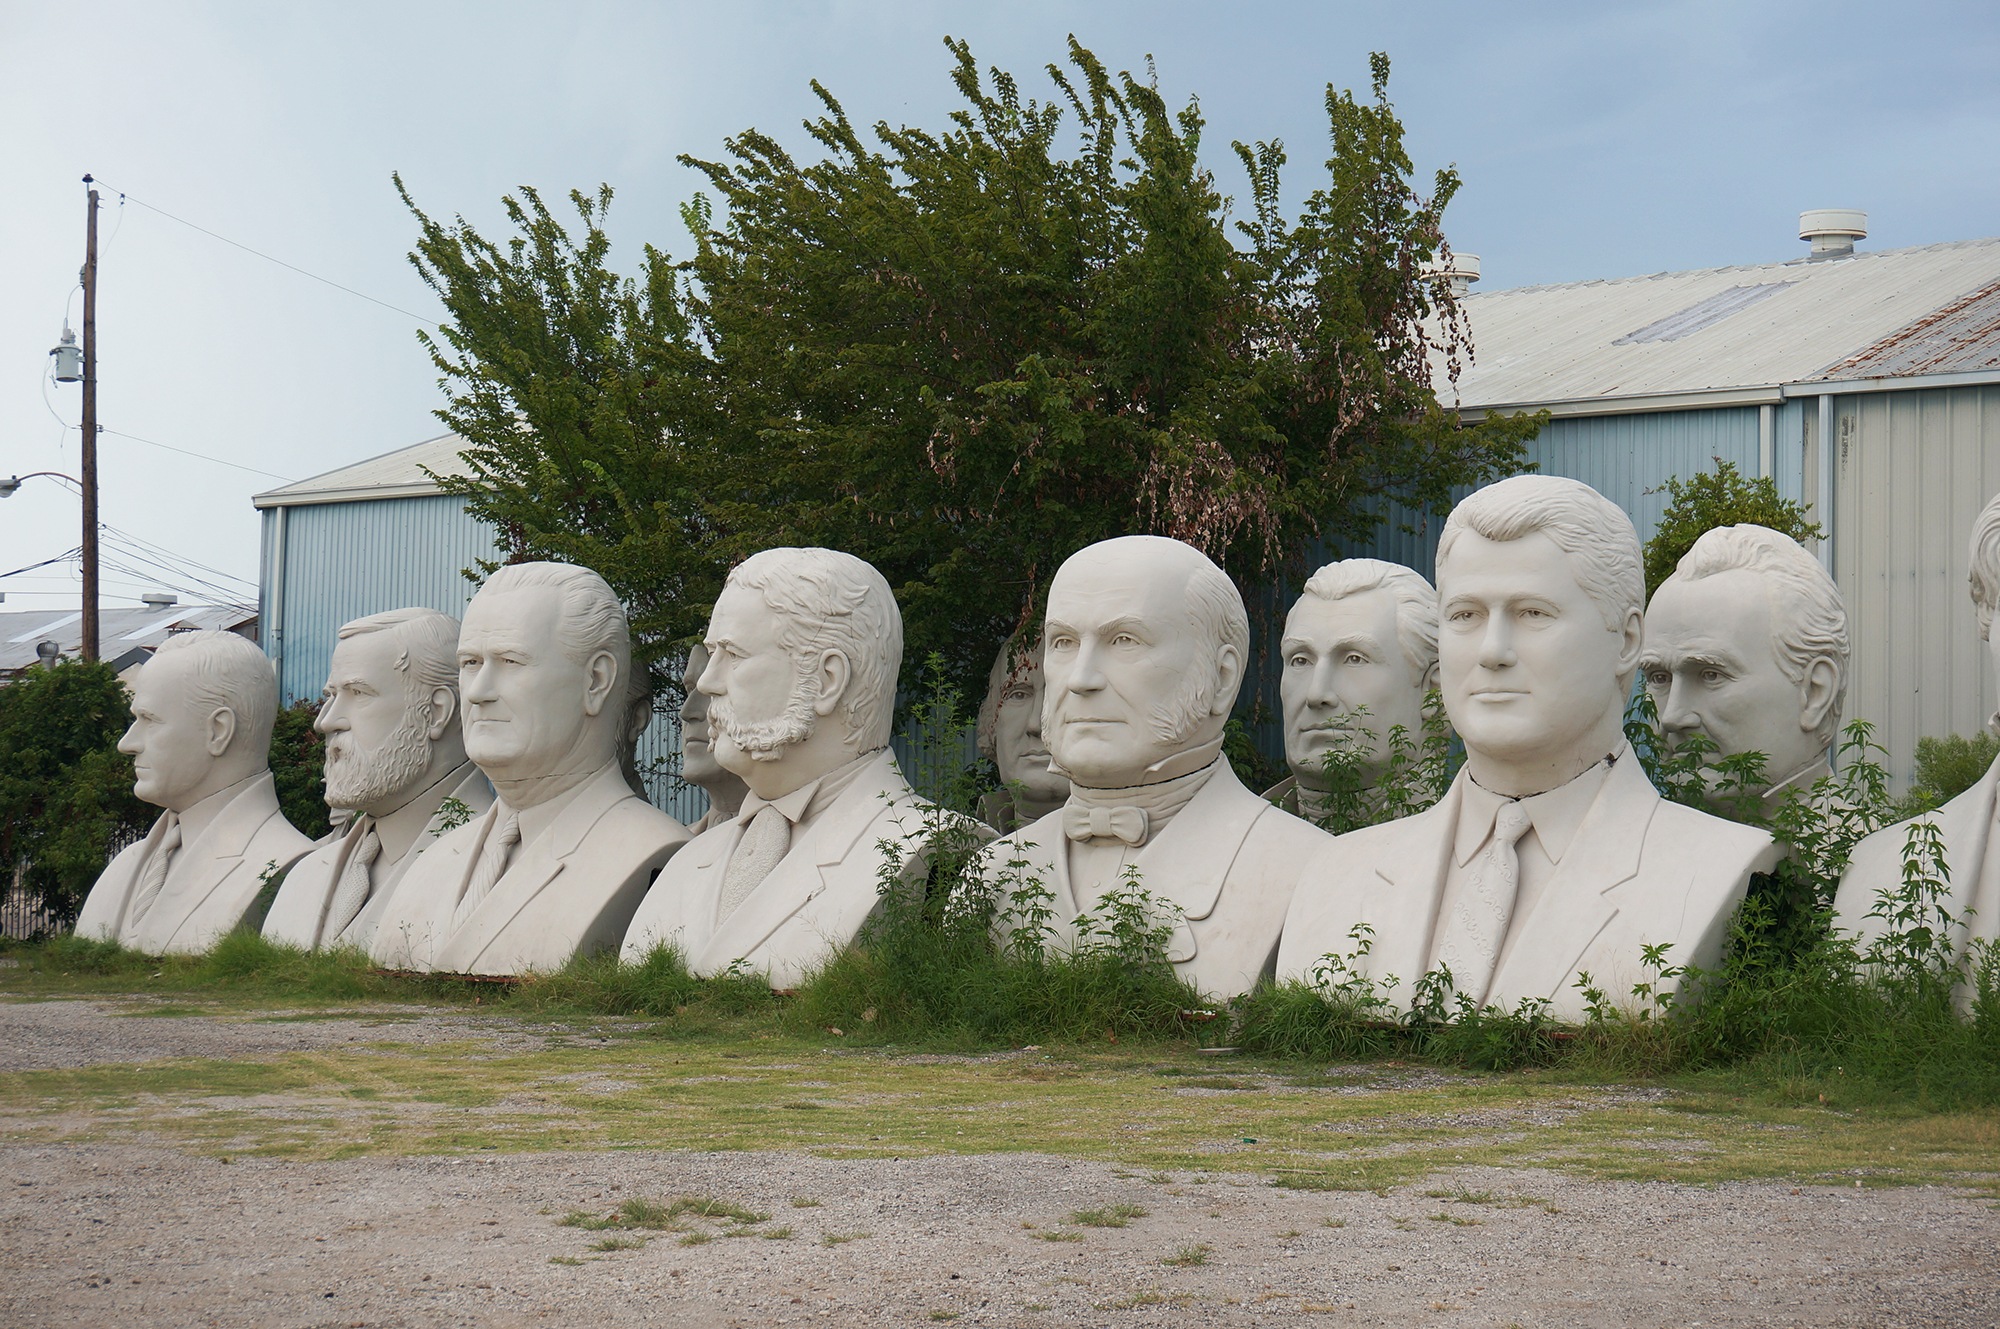 How many ex-US-presidents do you recognize? / ¿Cuántos expresidentes de EU reconoces?